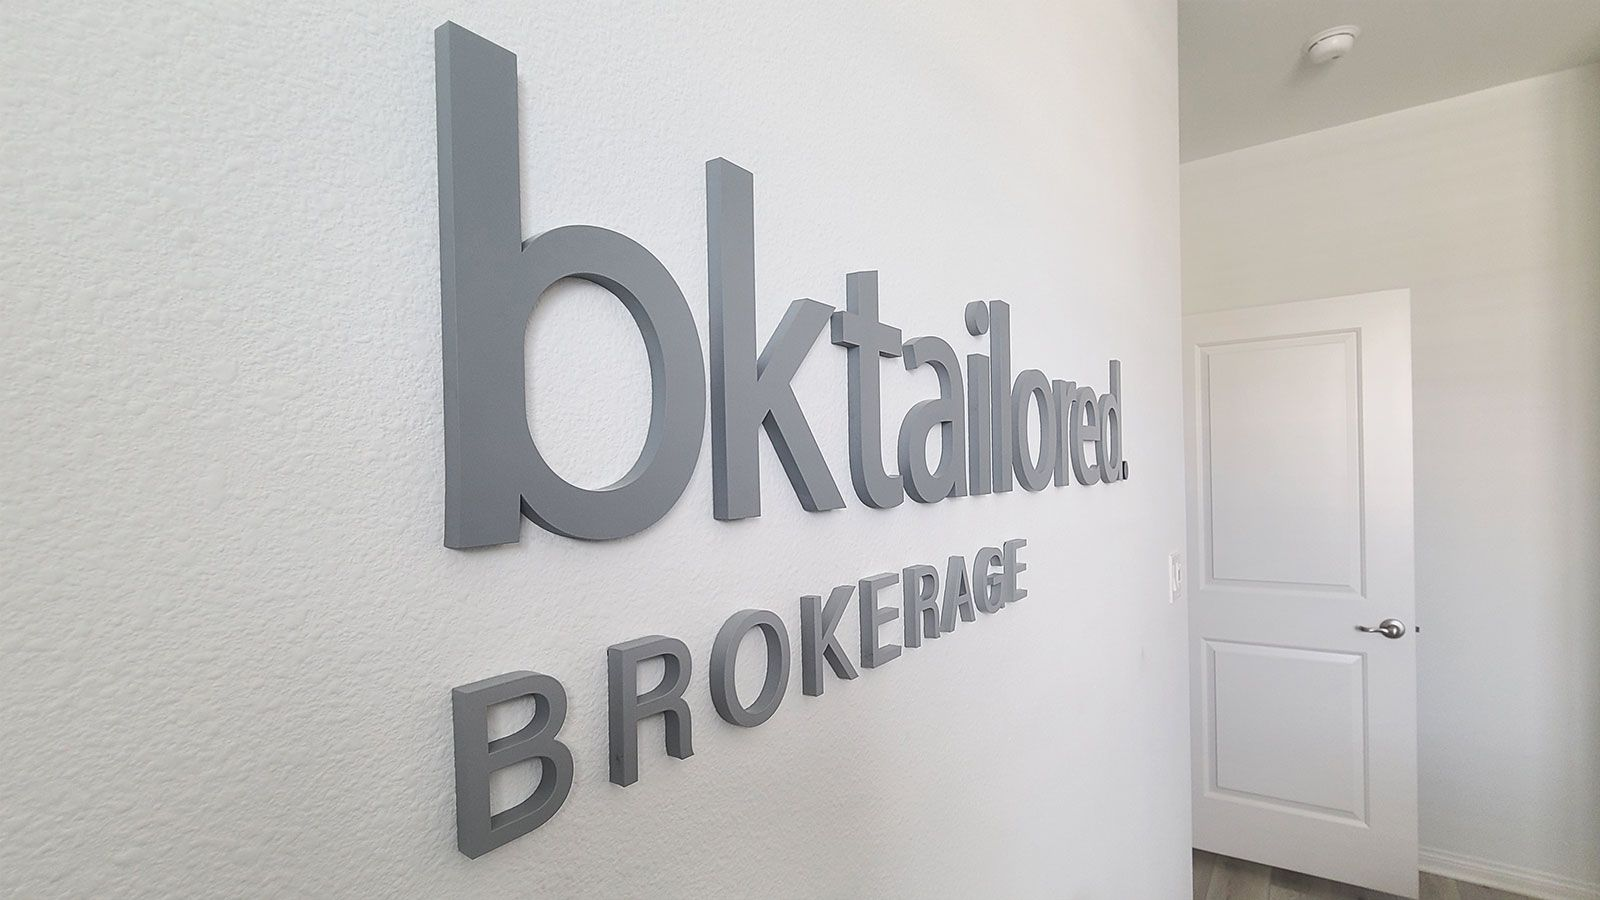 Bktailored painted 3D letters